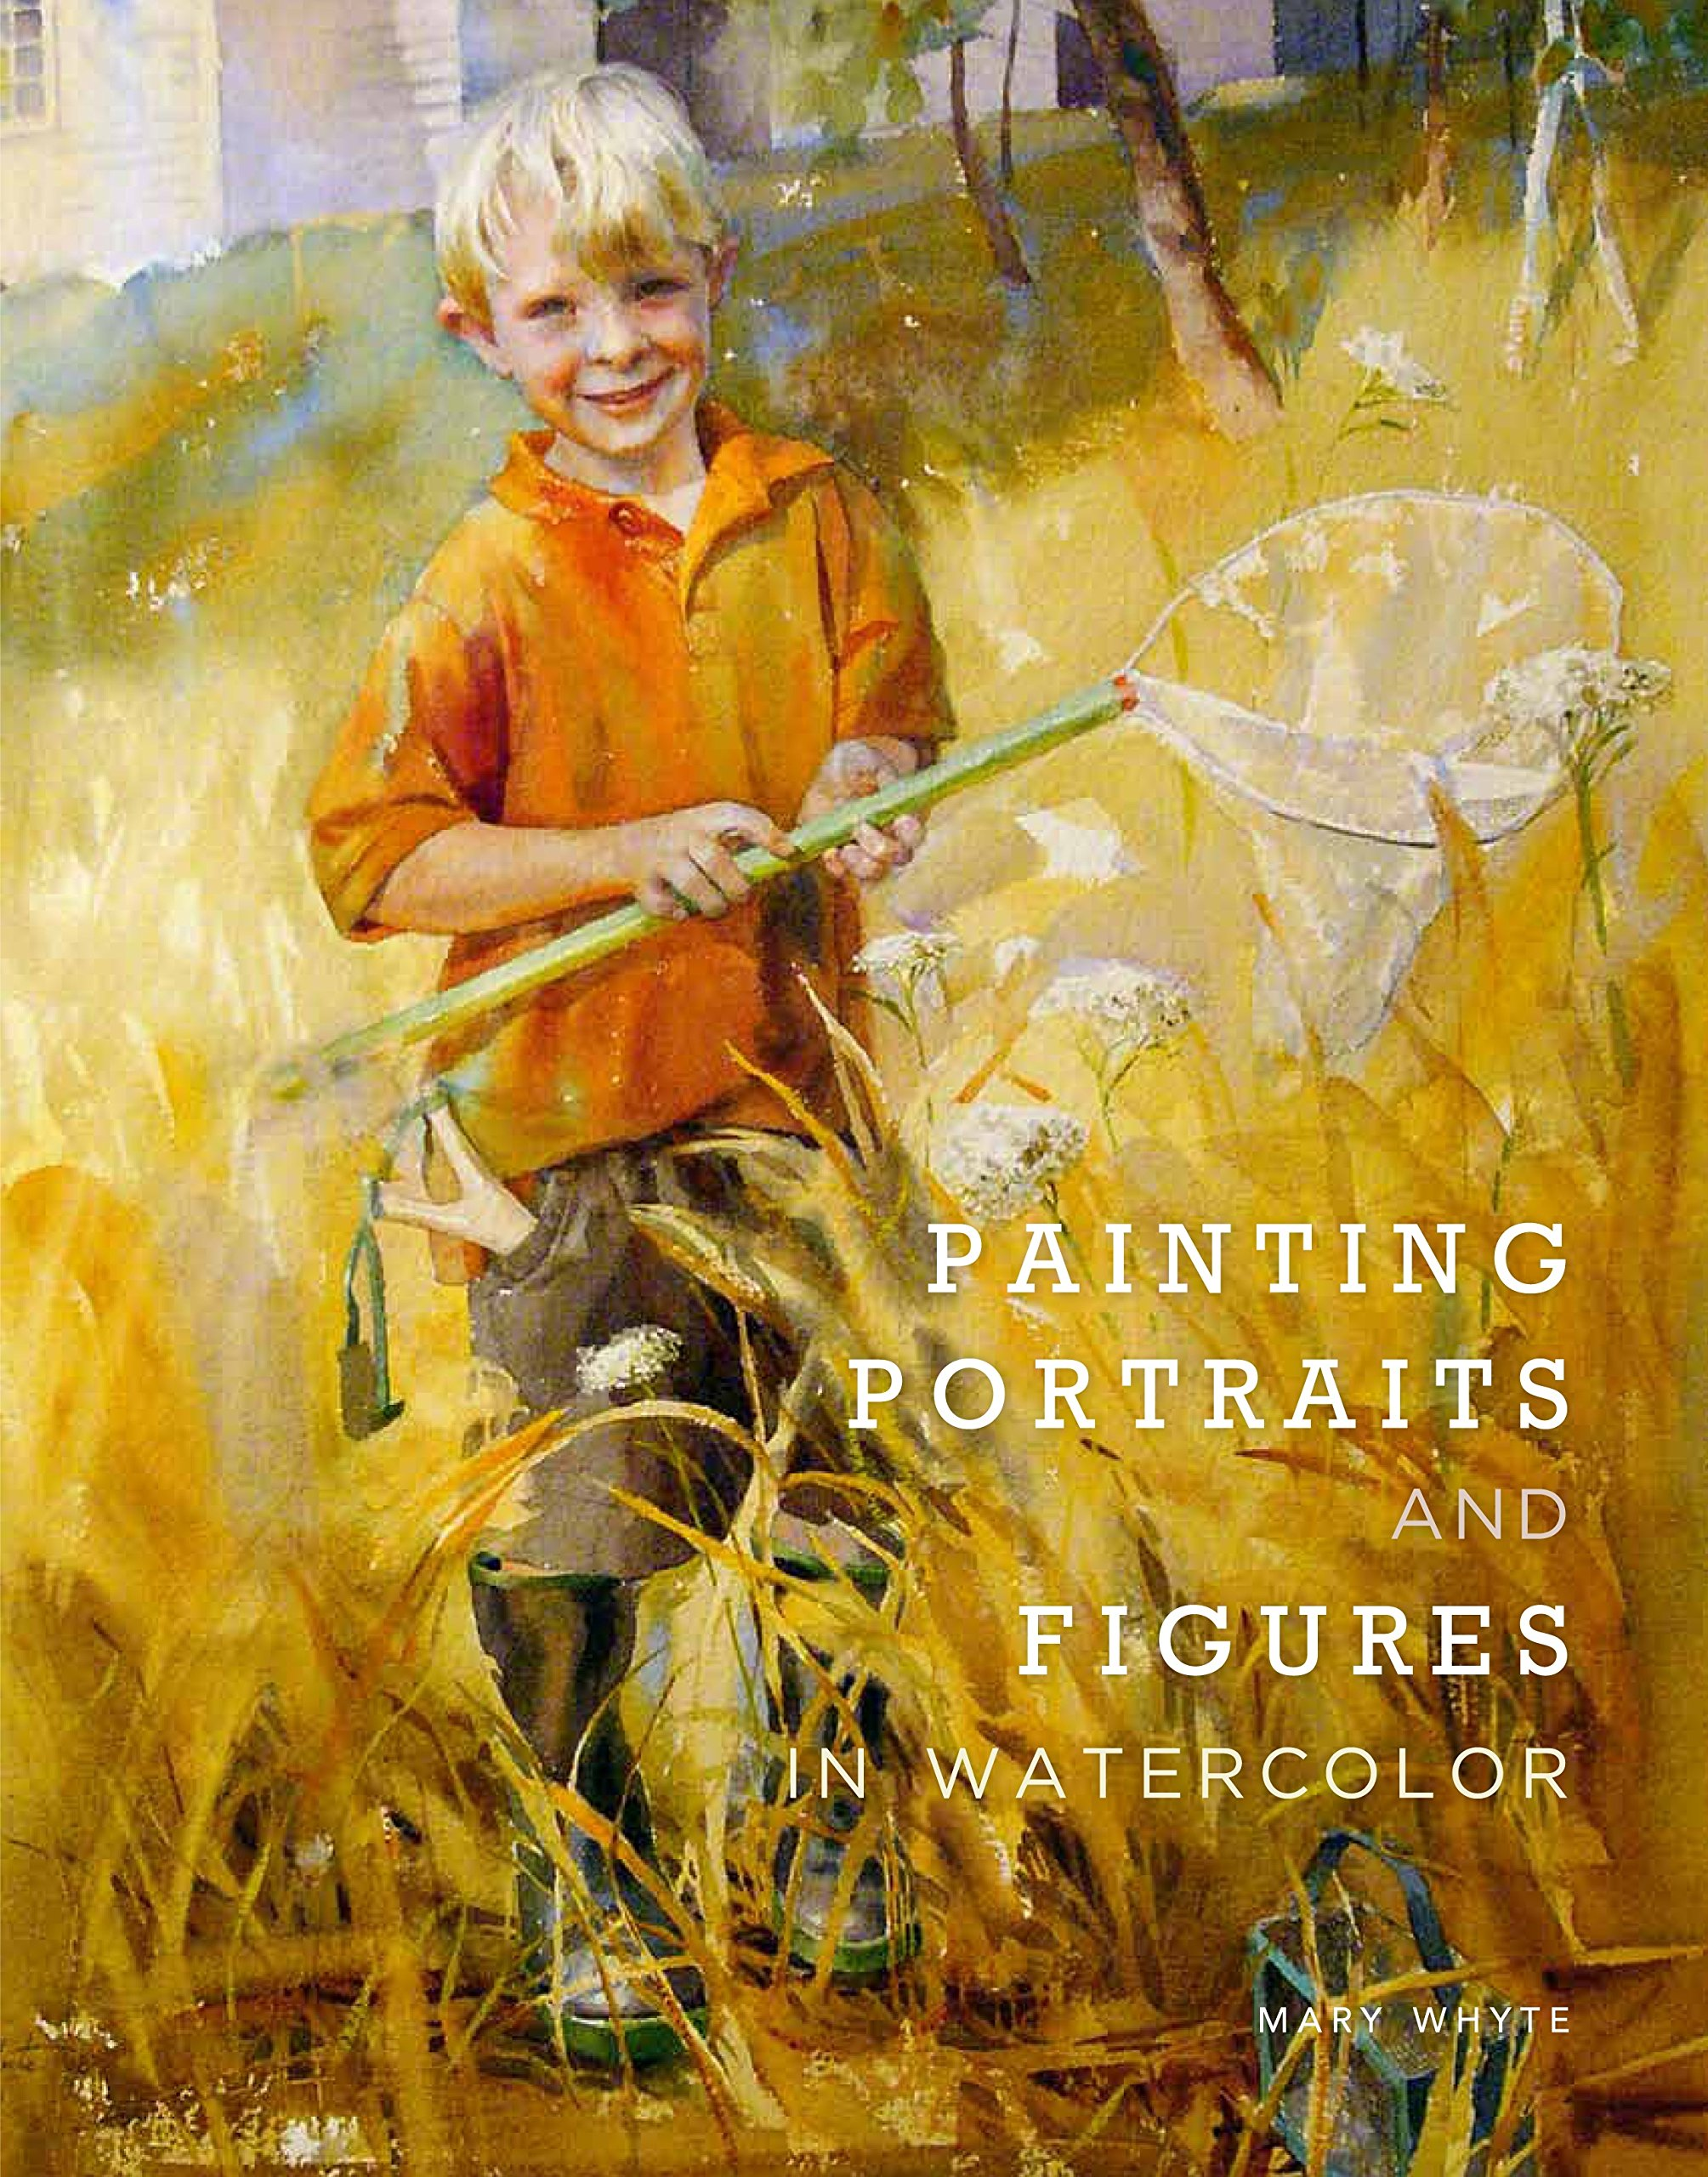 Watercolor artist magazine subscription - Painting Portraits And Figures In Watercolor Mary Whyte 9780823026739 Amazon Com Books